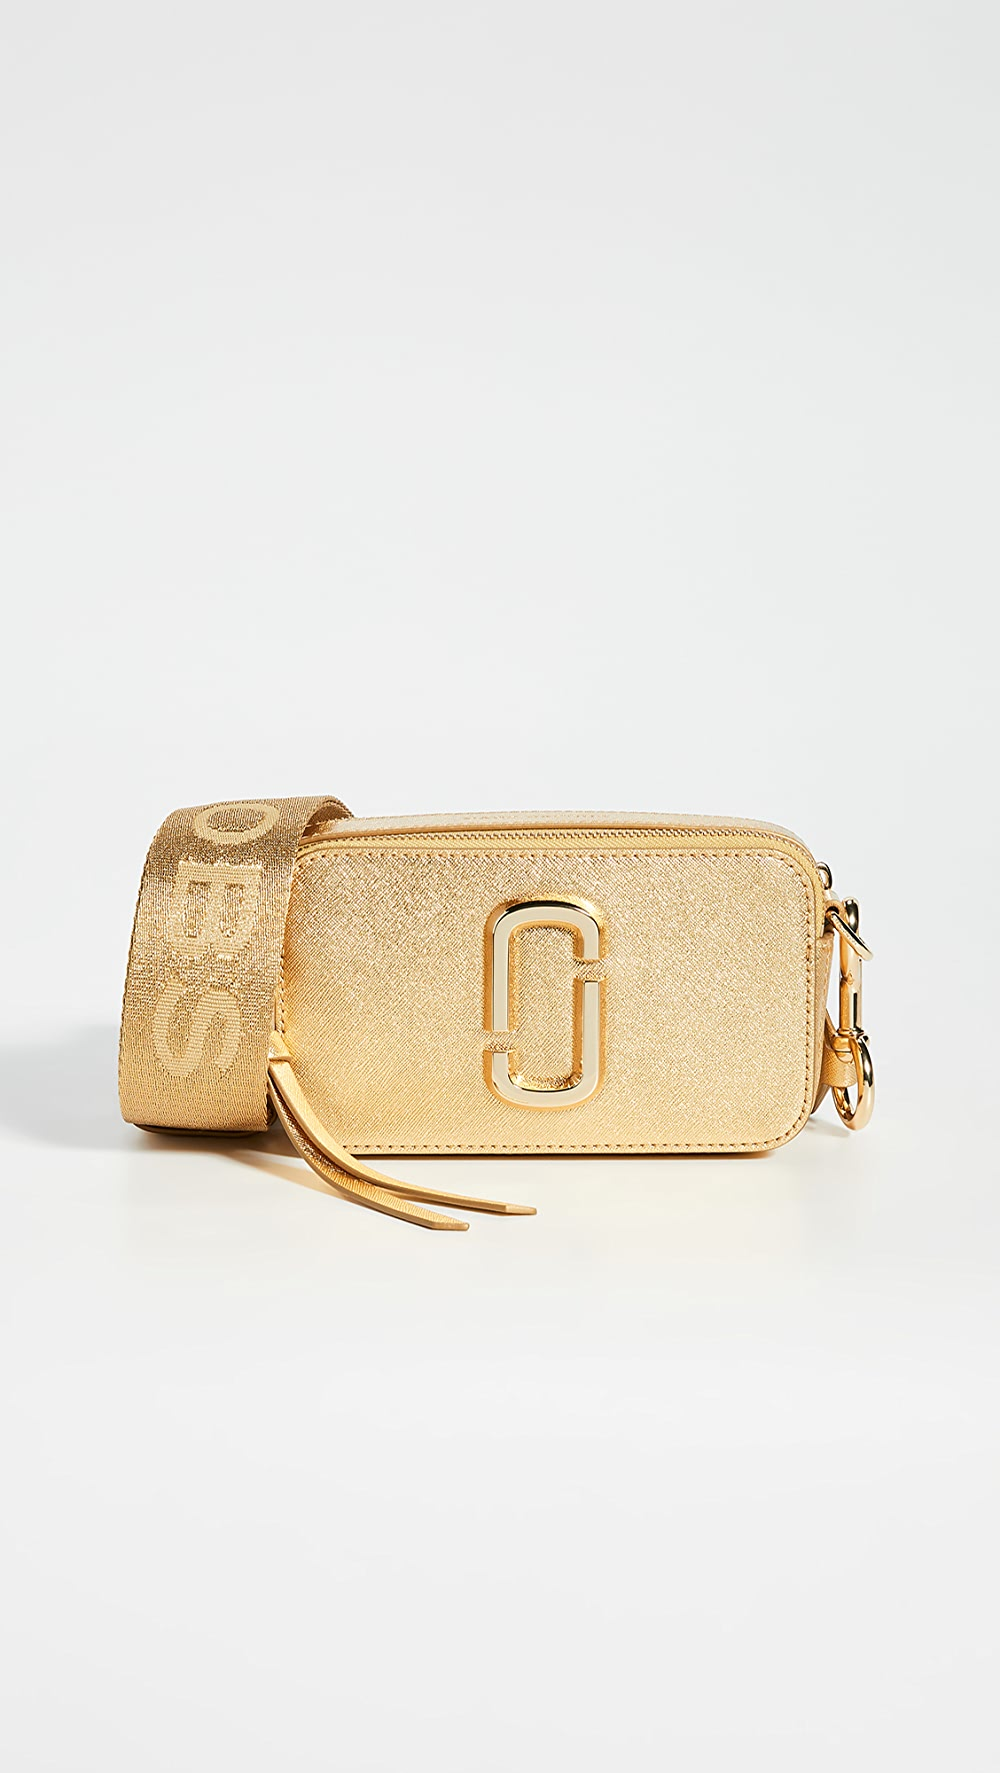 Cheap Sale The Marc Jacobs - Snapshot Dtm Metallic Camera Bag Bright Luster